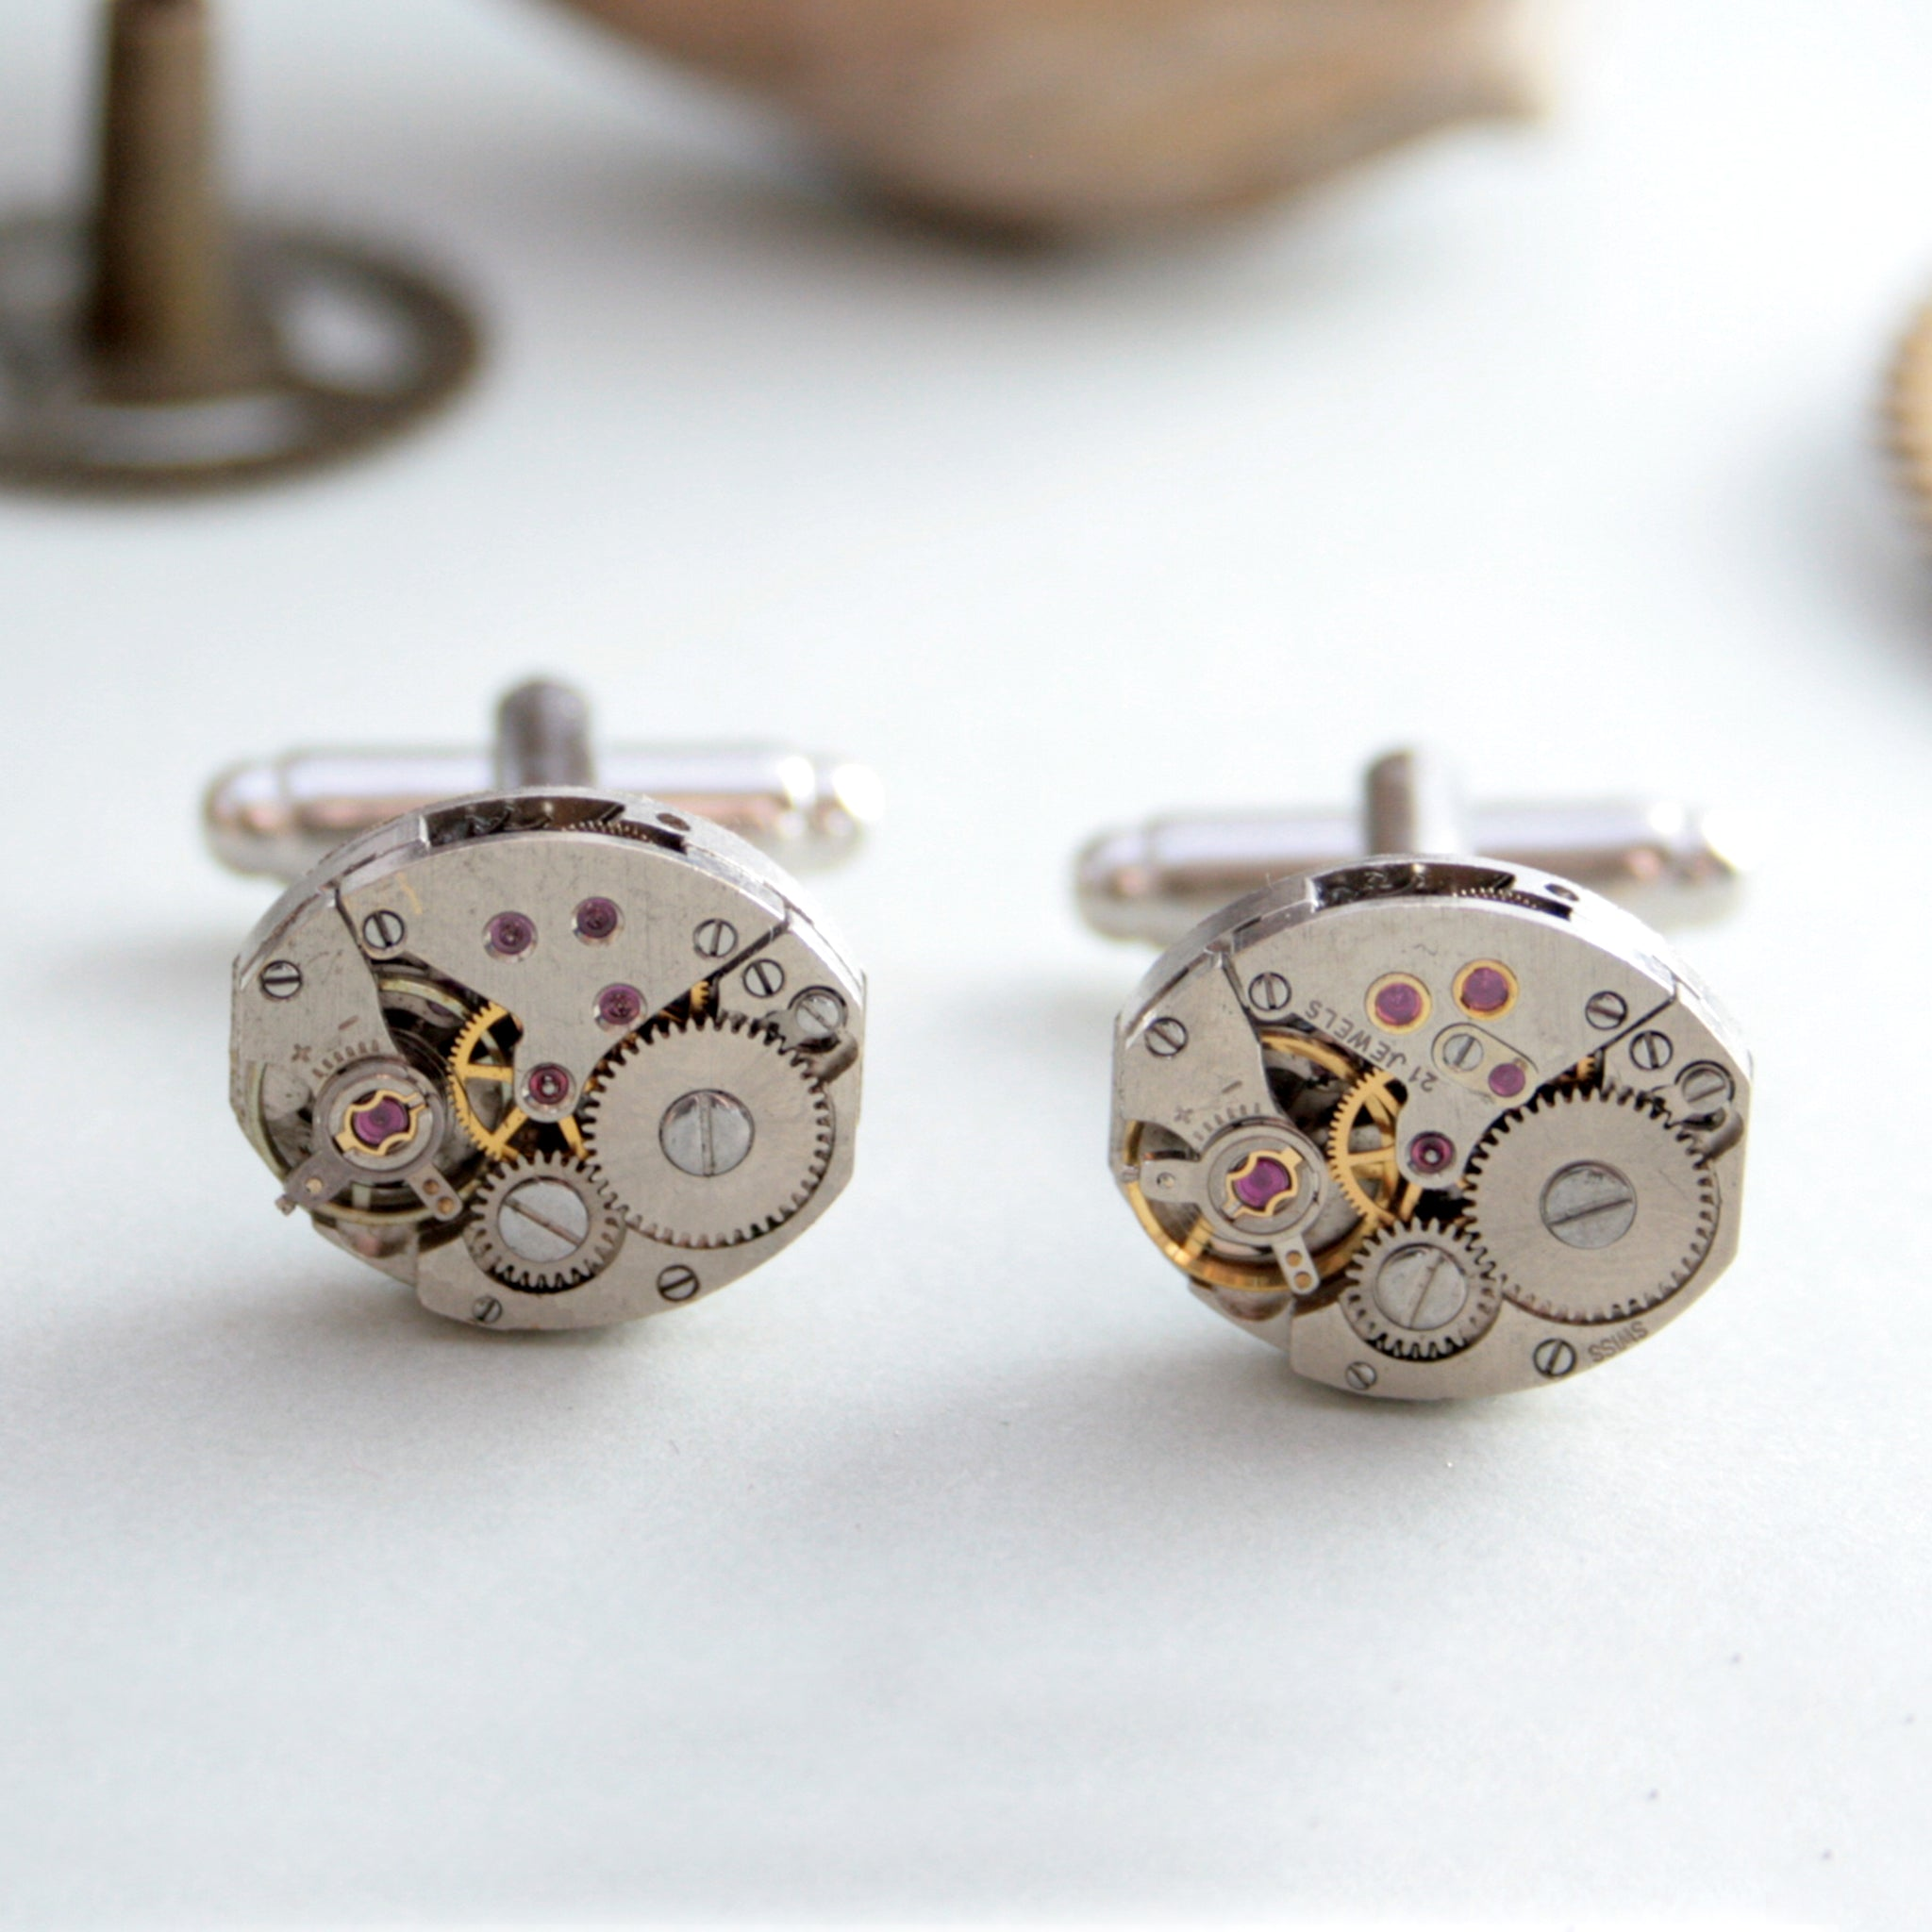 steampunk womens cufflinks featuring antique watch movements